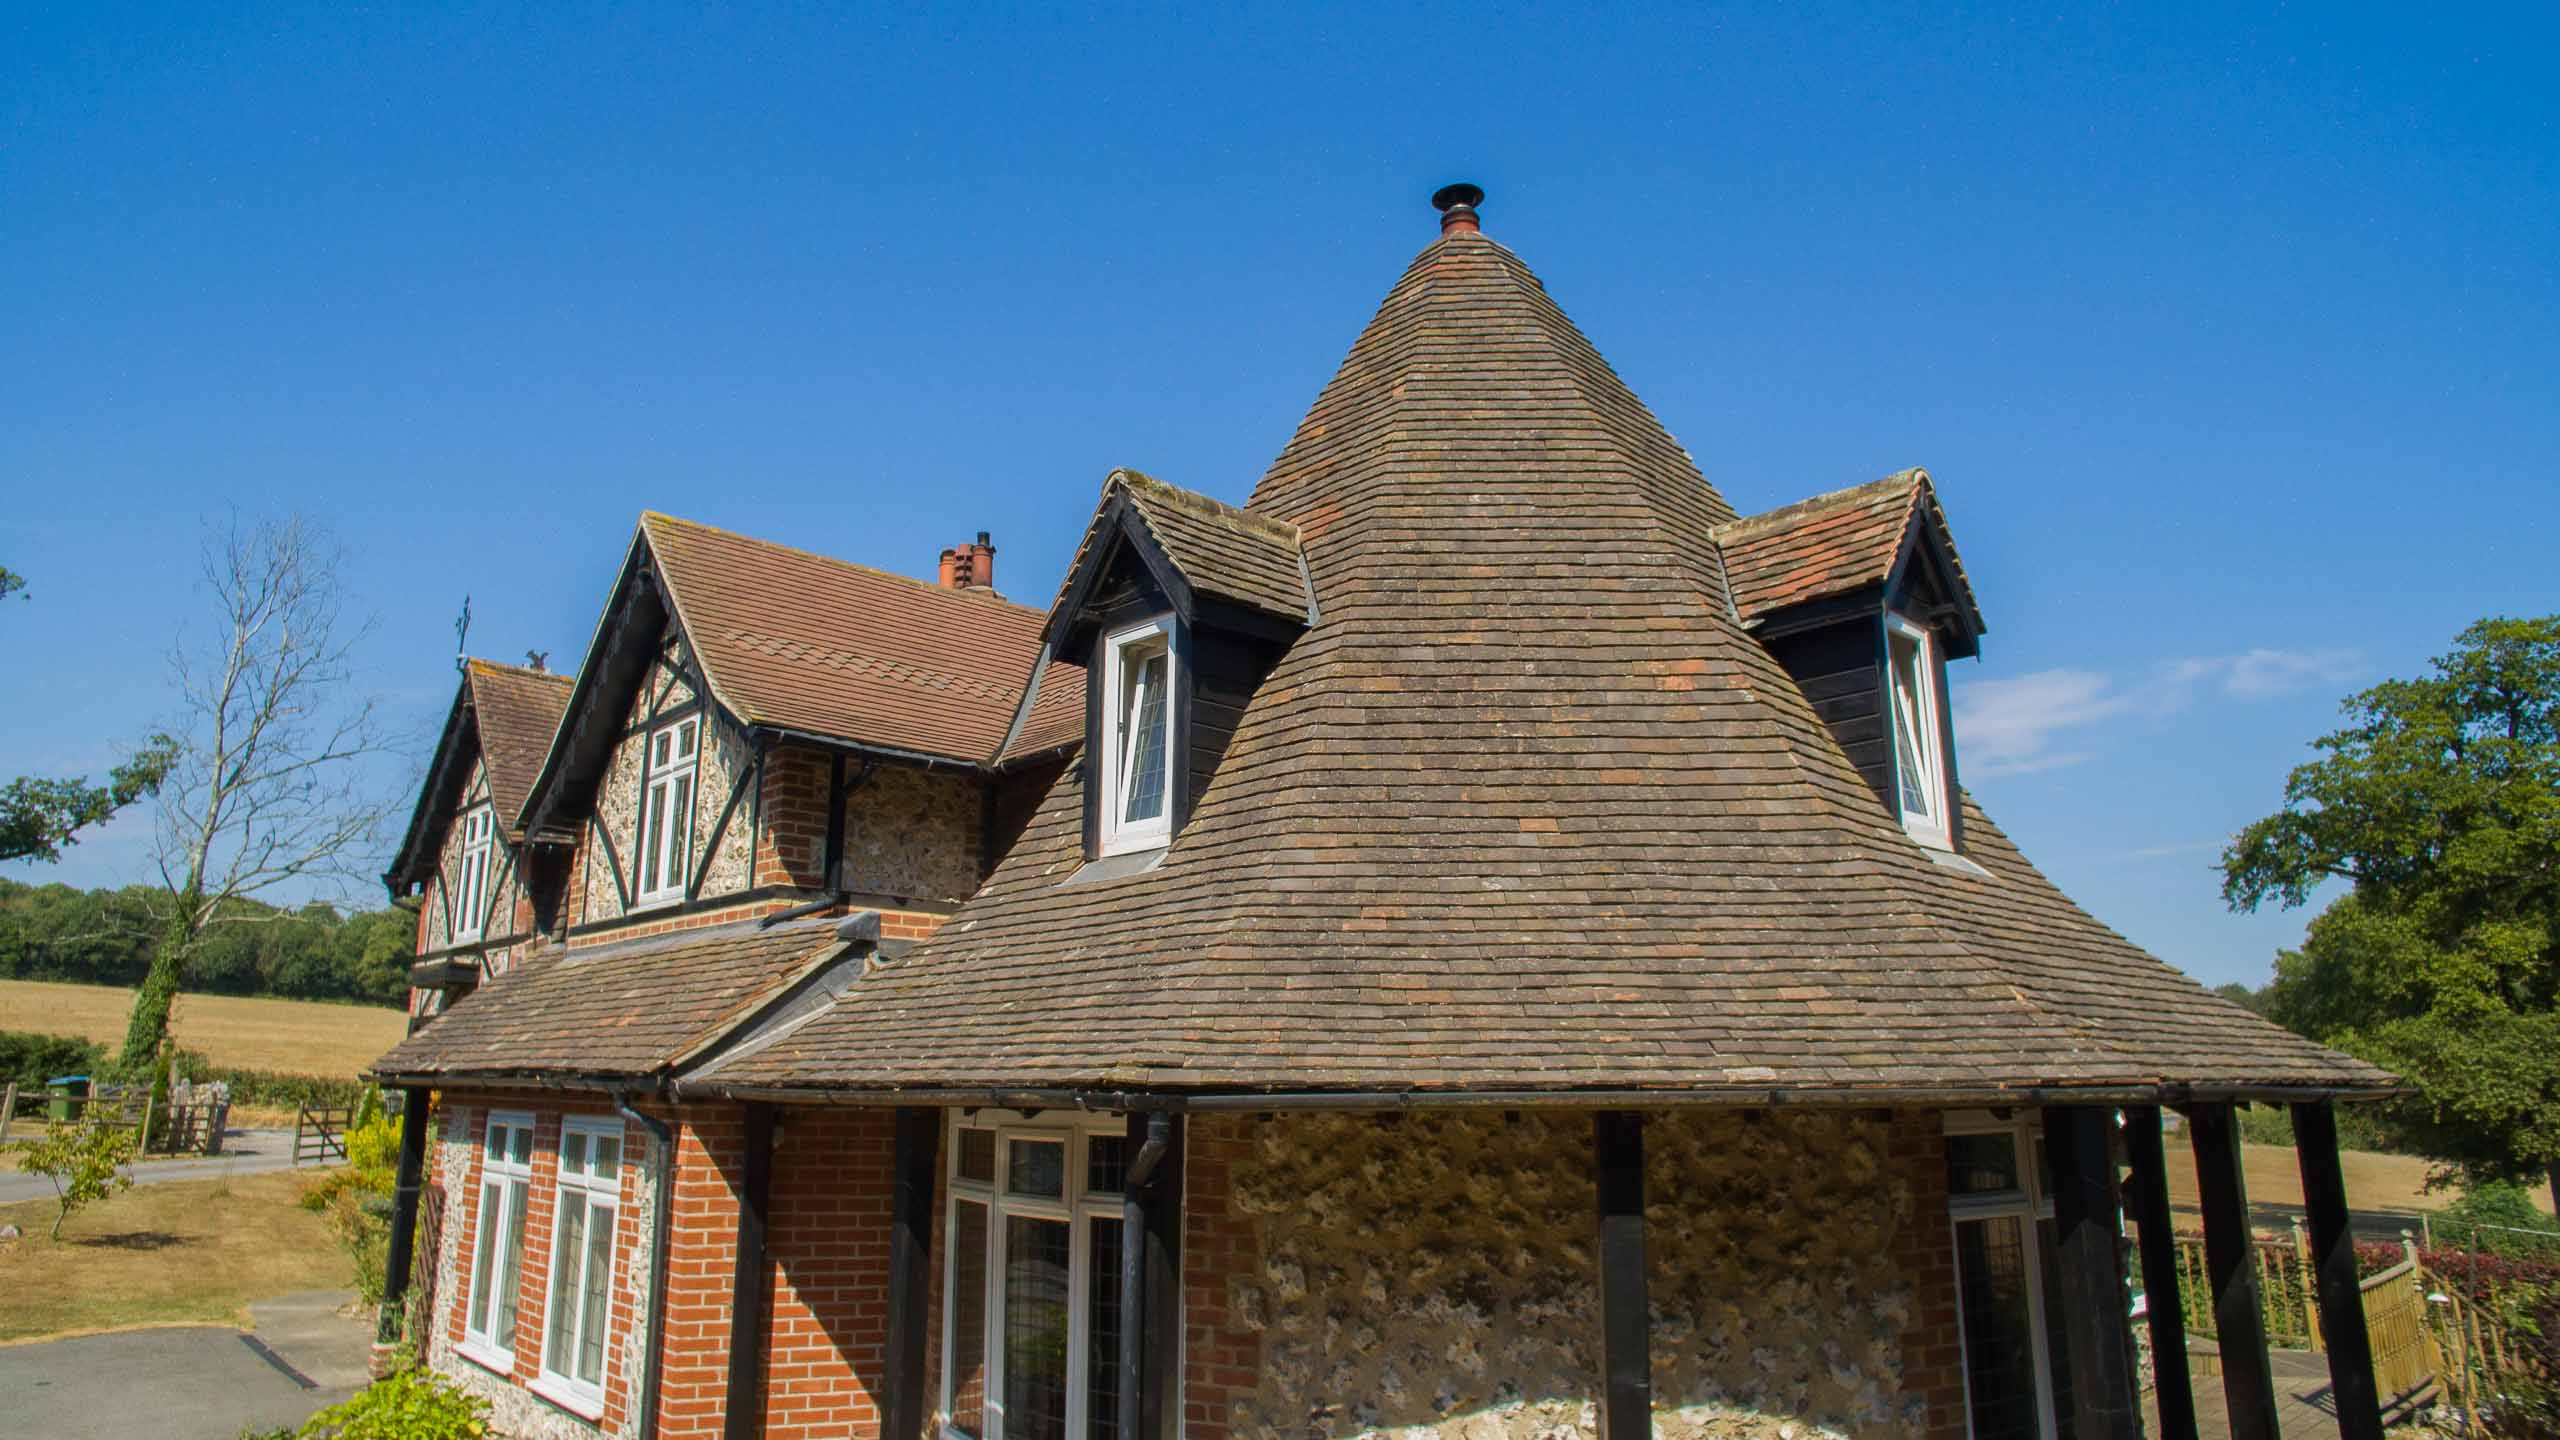 turret roof - building work and roofing by RJ Steele builders in Sussex